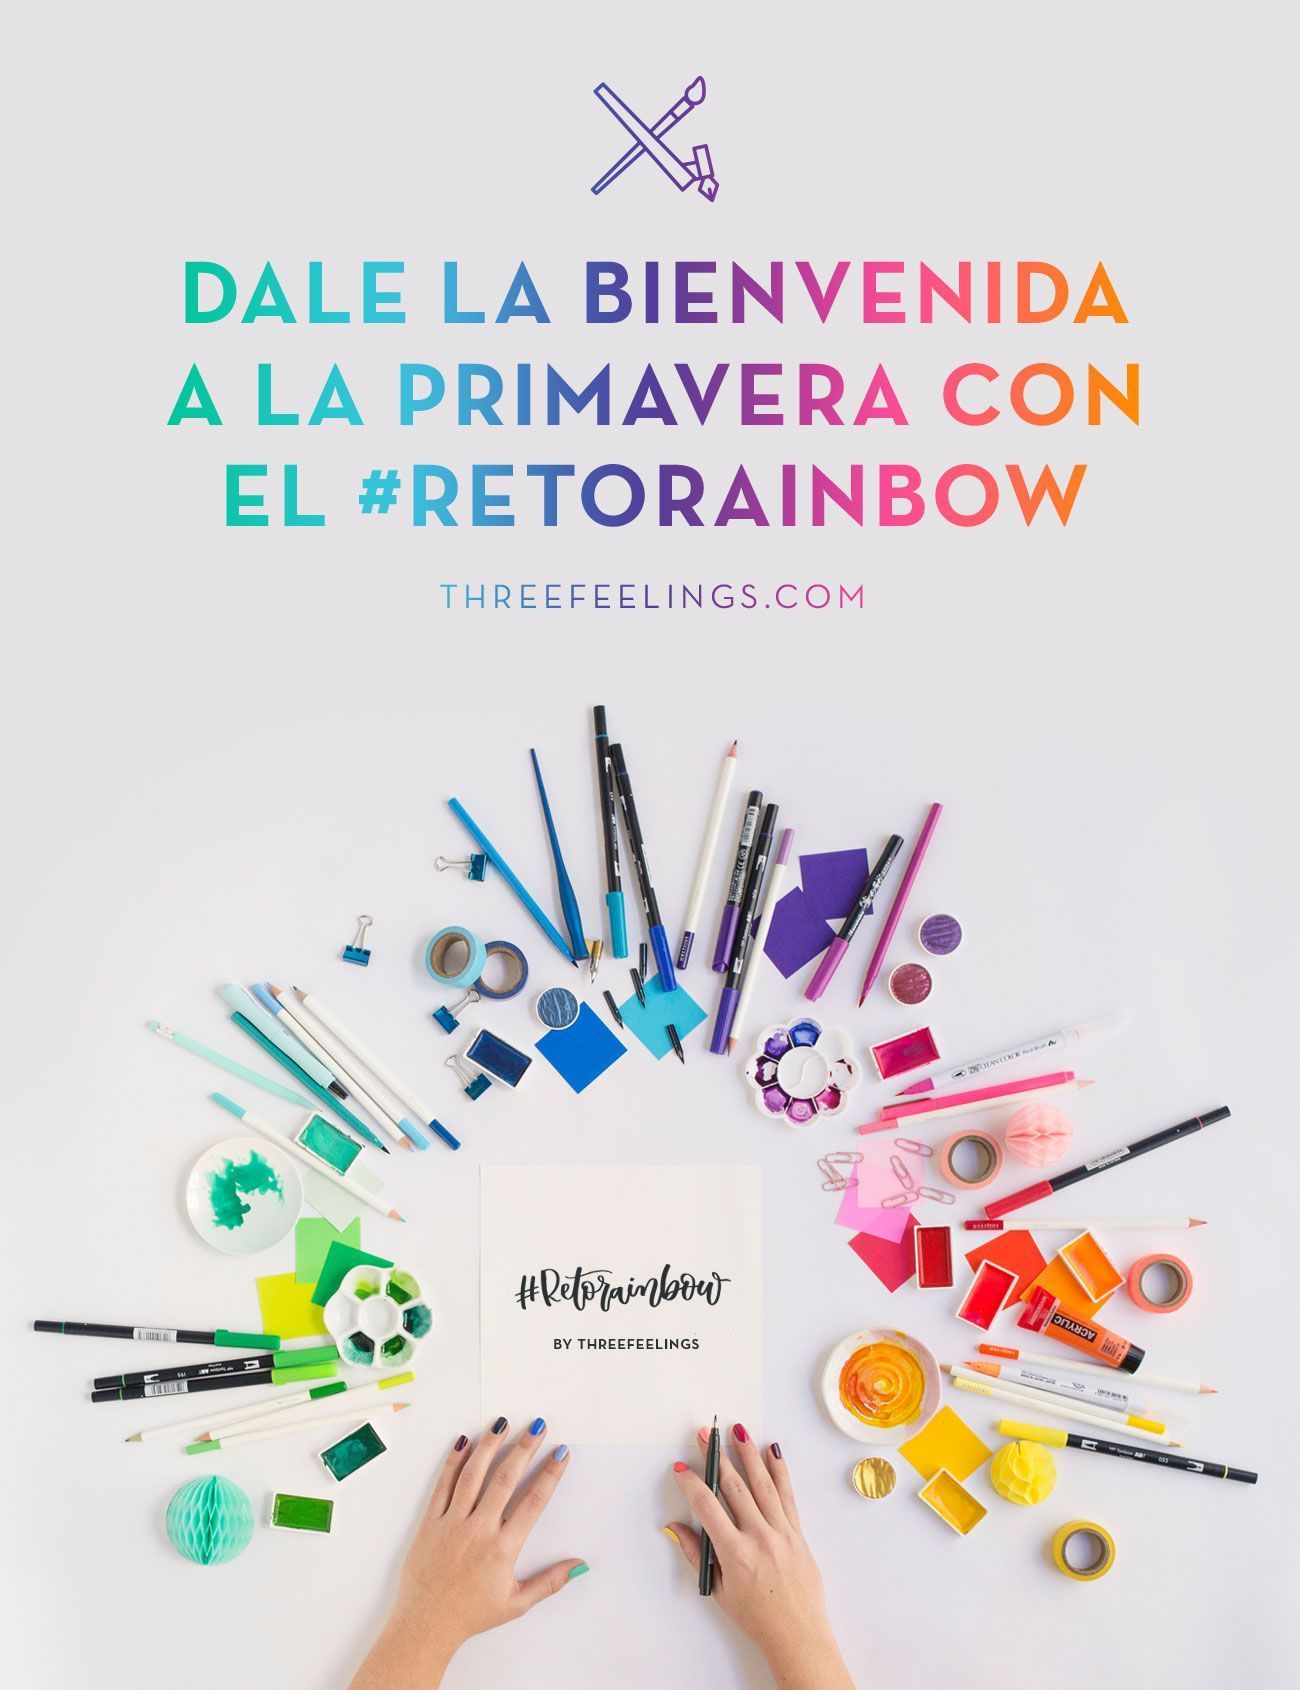 RetoRainbow-lettering-arcoiris-colores-ThreeFeelings-portada